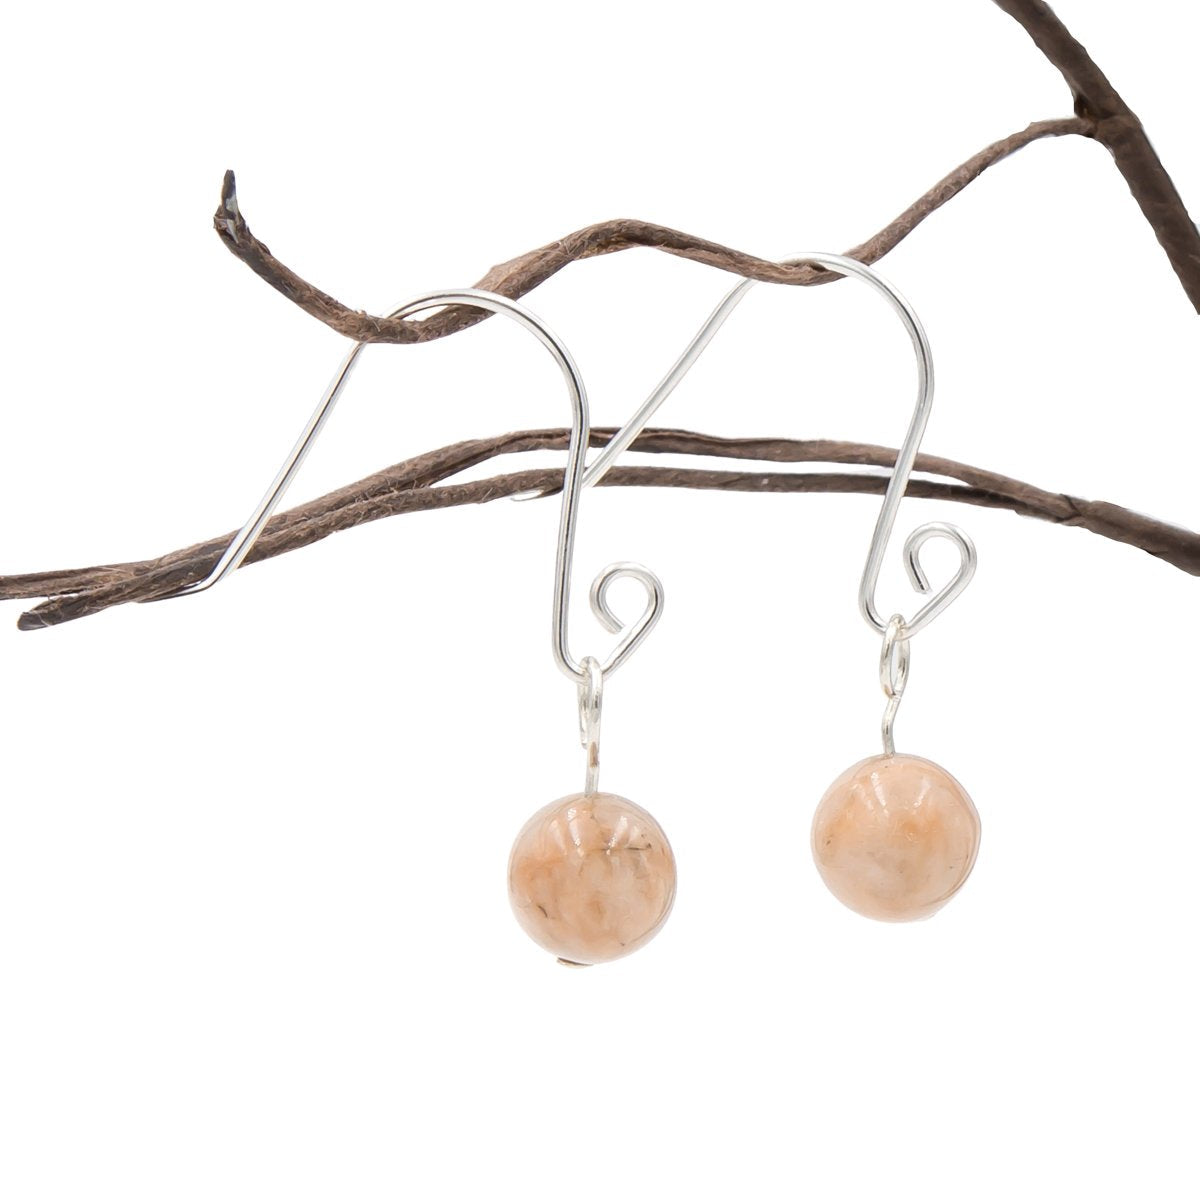 Handmade Peach Moonstone Spiral Loops Interchangeable Sterling Silver Earrings